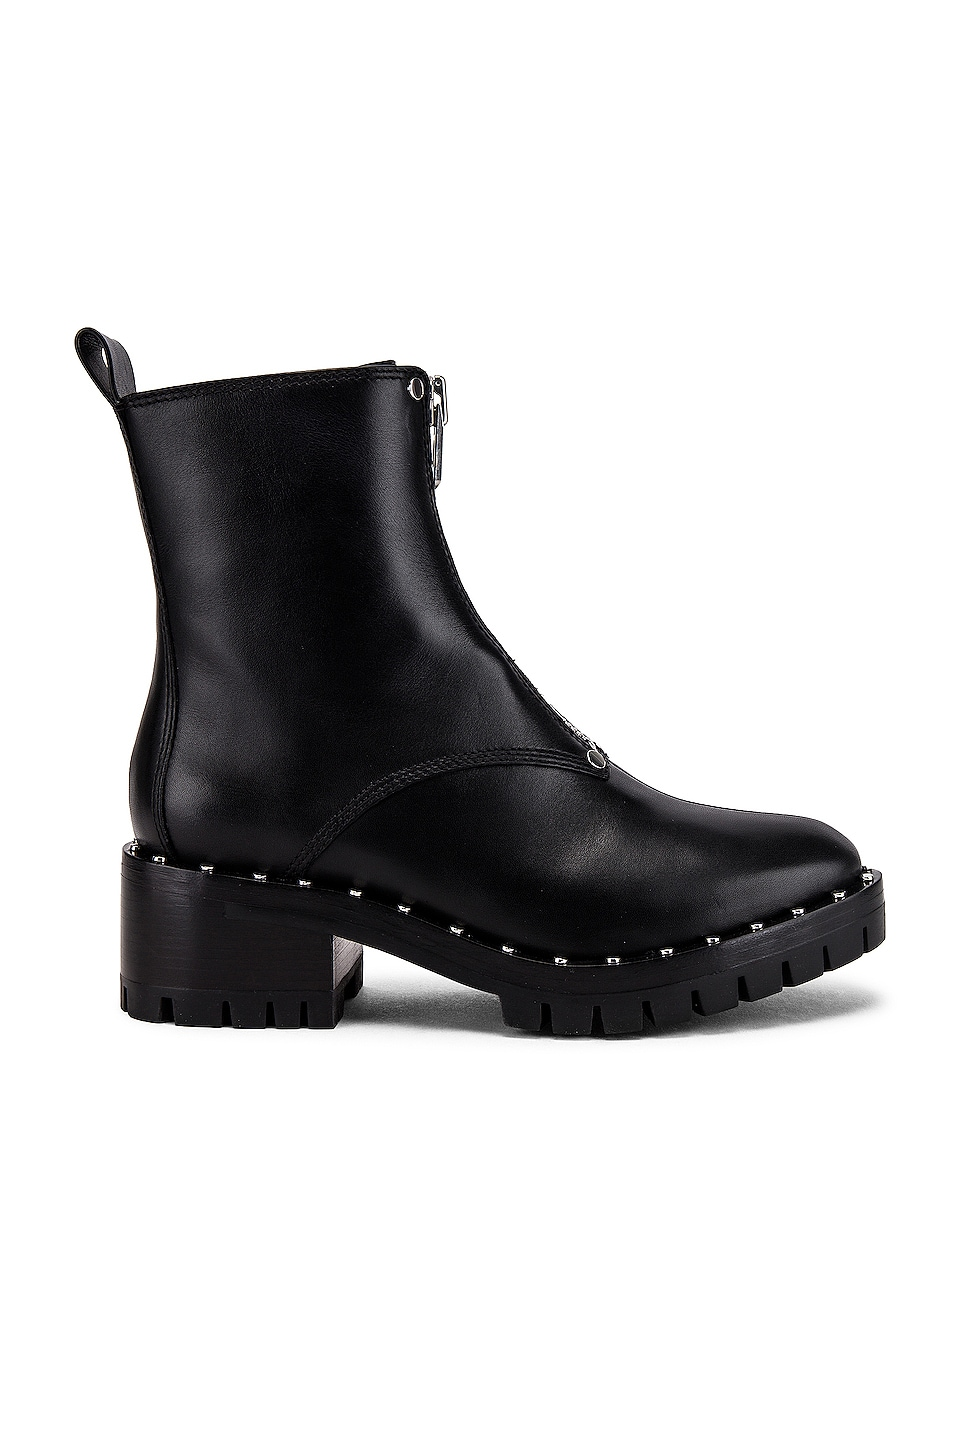 3.1 phillip lim Hayett Bootie in Black